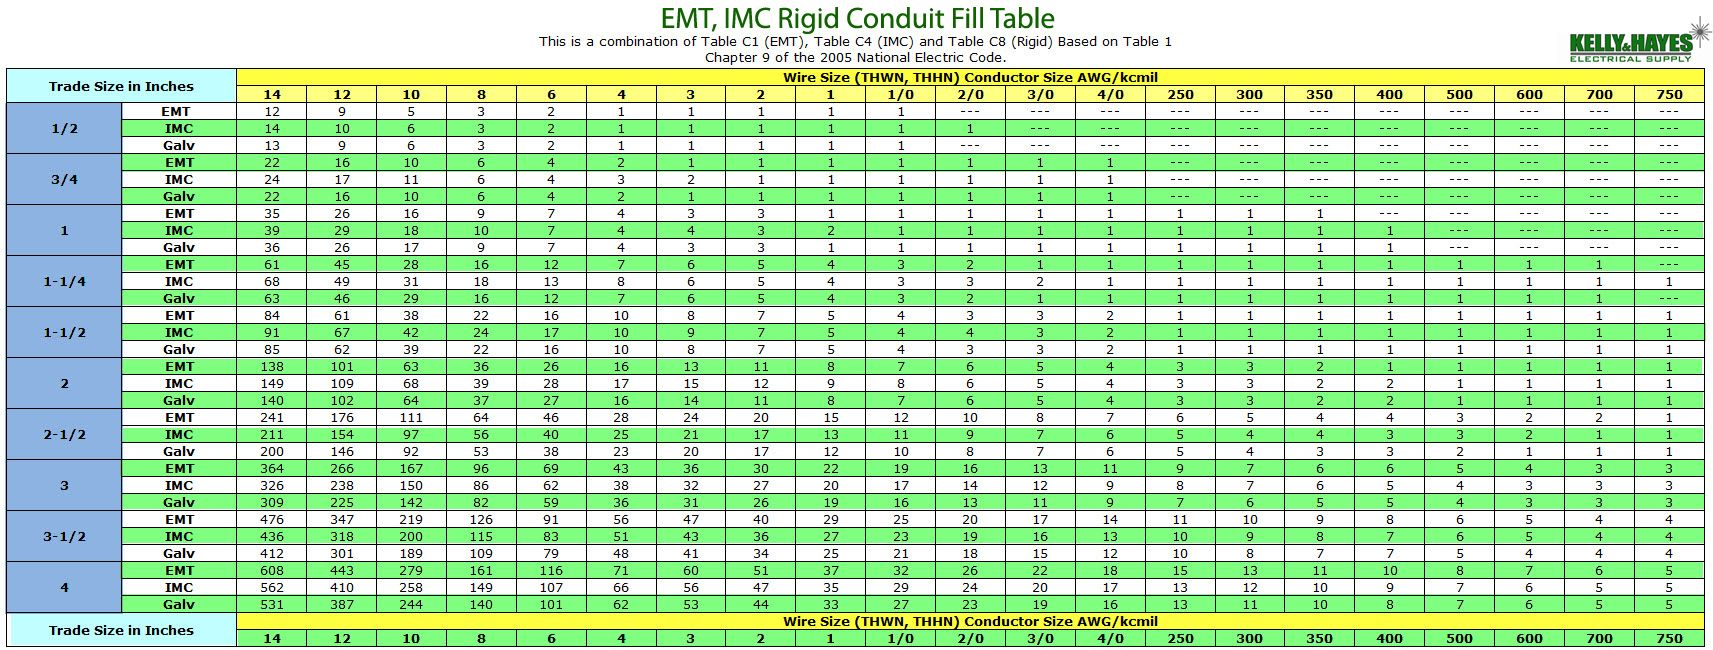 Emt conduit wire fill chart wiring diagram emt conduit diagram wiring center u2022 pvc conduit wire fill chart emt conduit wire fill chart greentooth Image collections